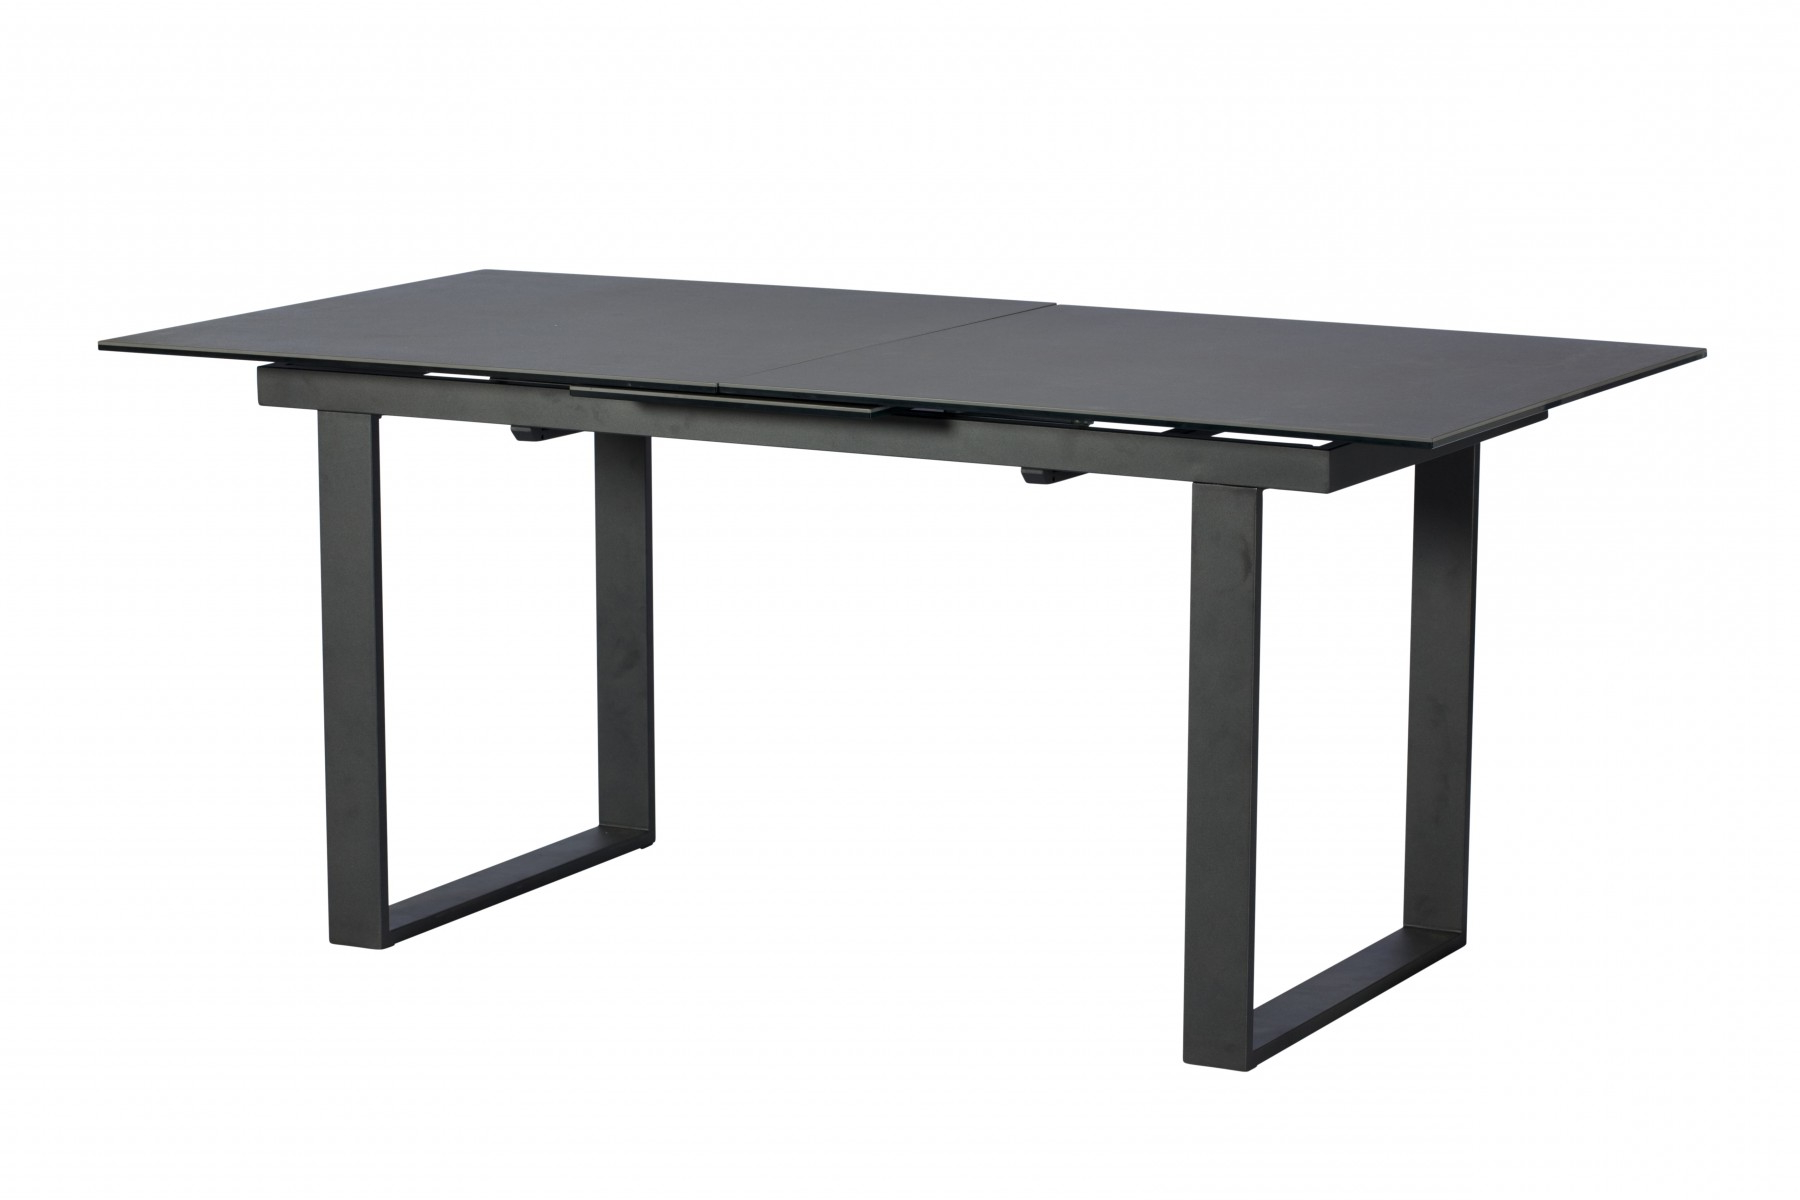 Monterrey Extending Dining Table - Dark Grey